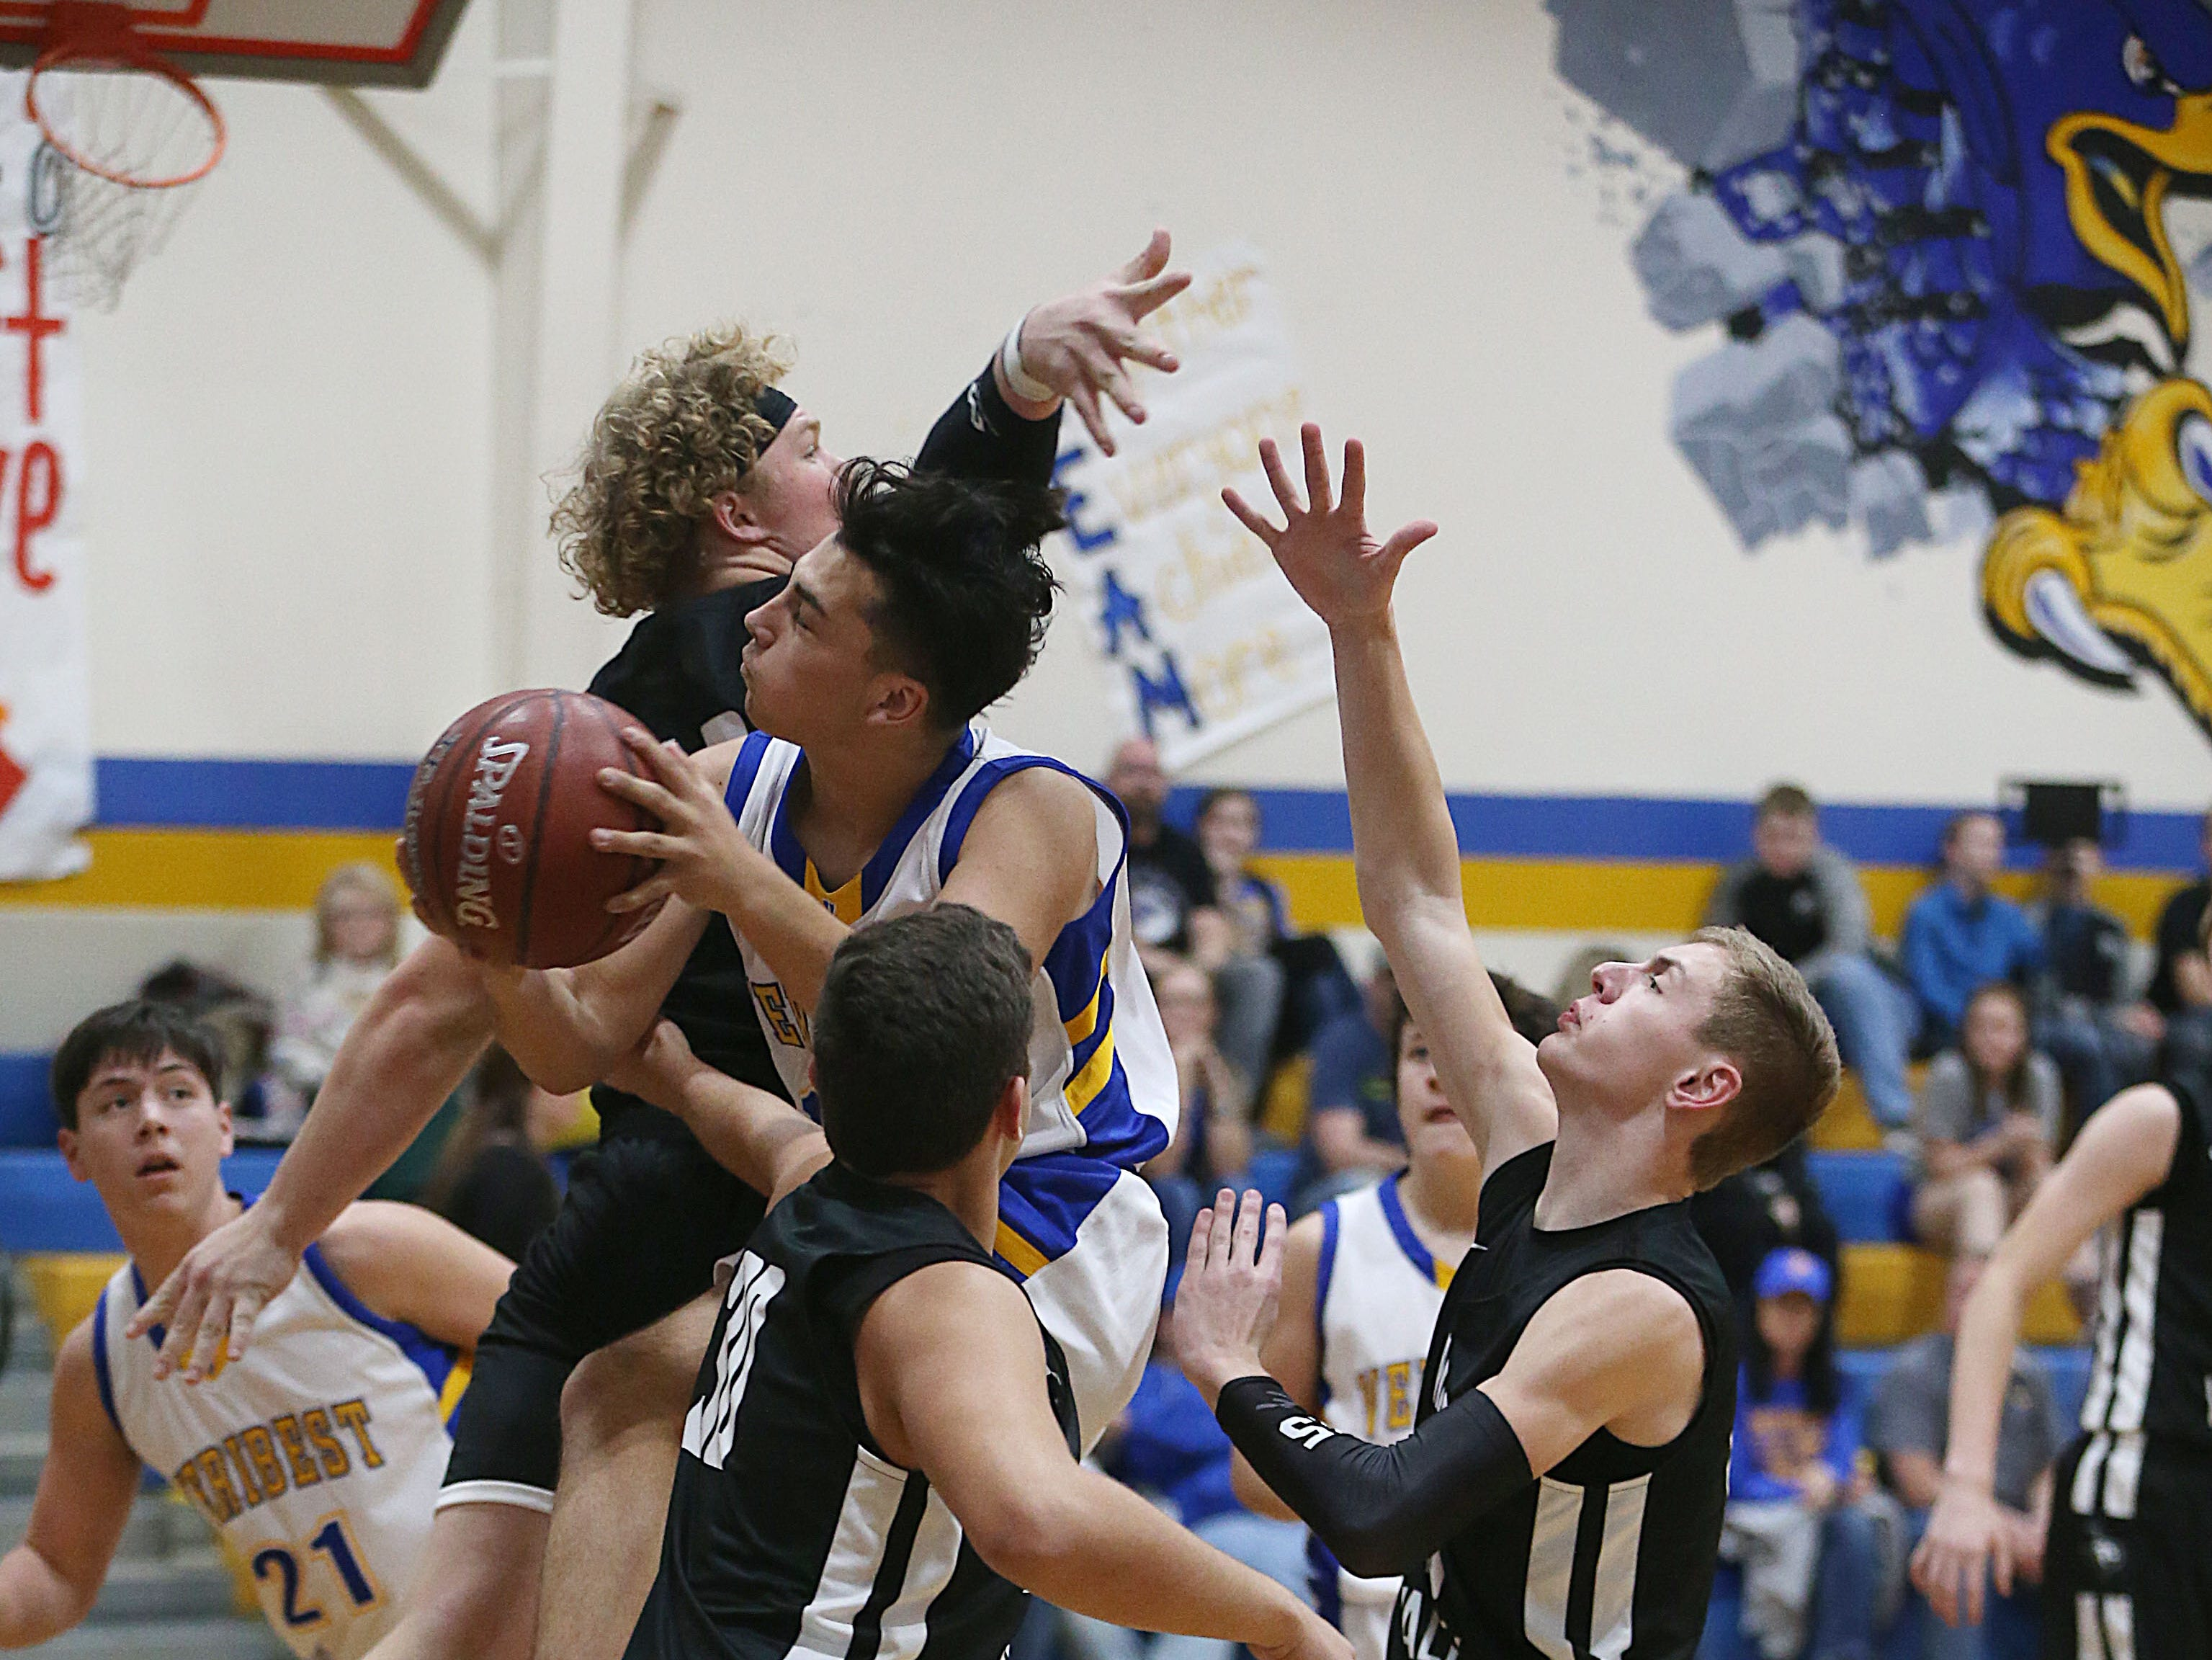 Veribest's Dominic Herrera (#11) pushes past Water Valley players to make a basket Tuesday, Jan. 8, 2019 in Veribest.